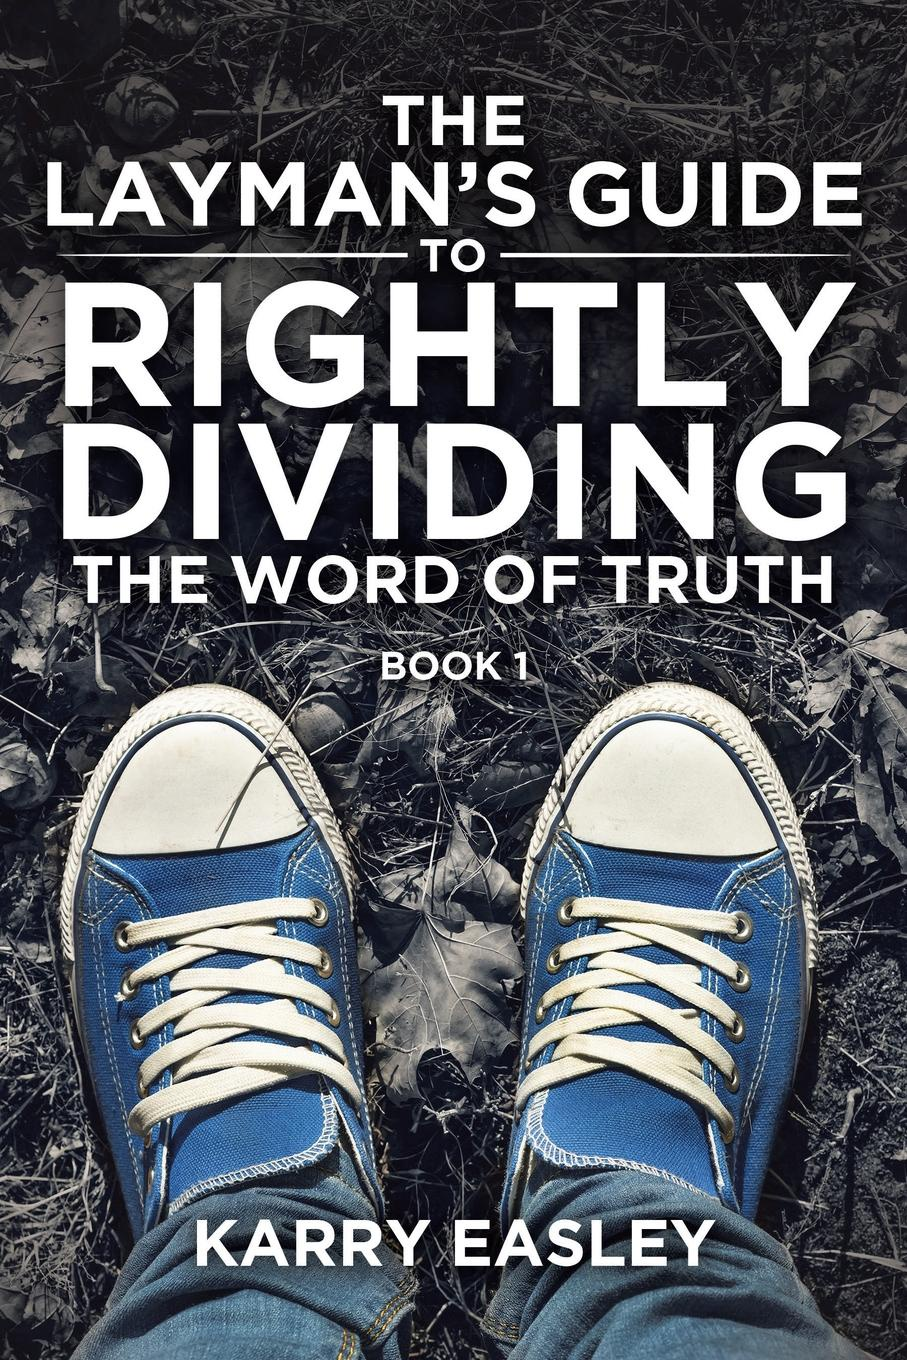 Karry Easley The Layman.s Guide To Rightly Dividing The Word of Truth. Book 1 mykell kendall god s 100 positive word and truth